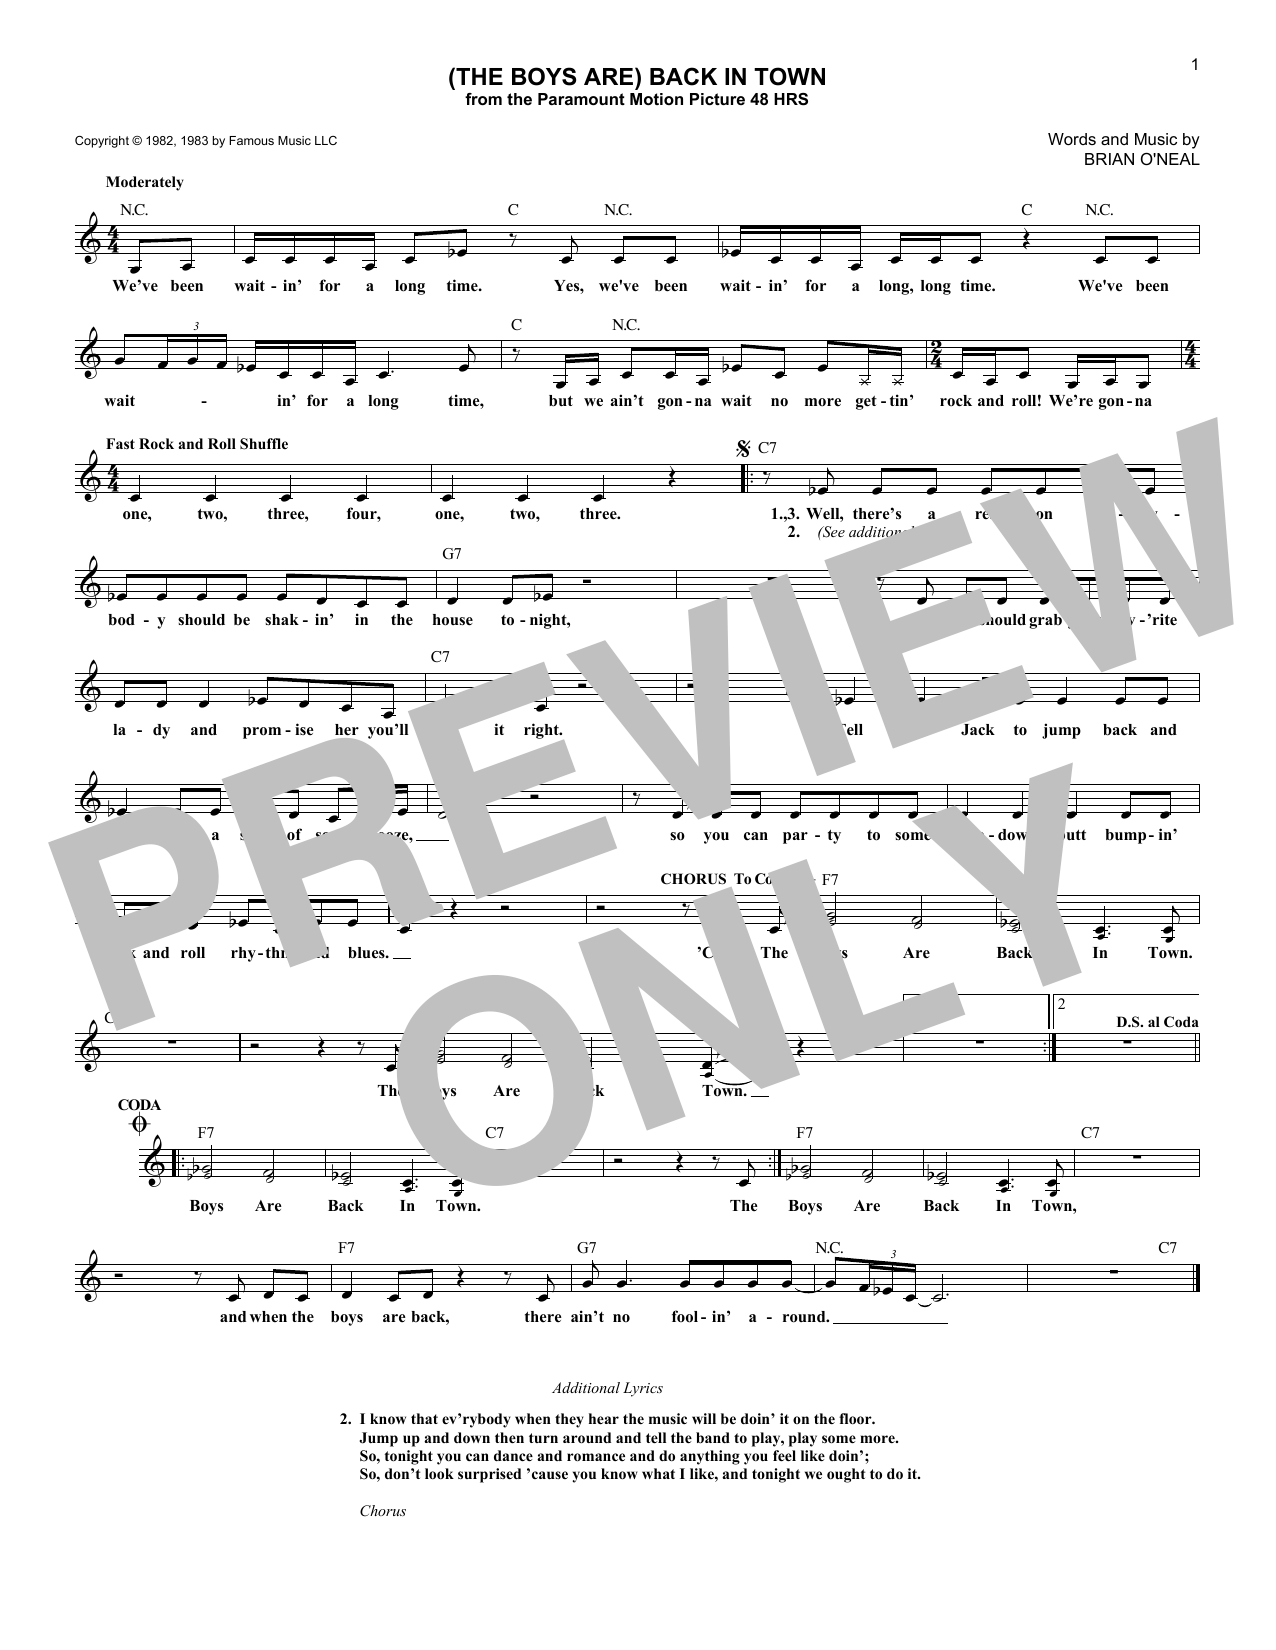 (The Boys Are) Back In Town Sheet Music